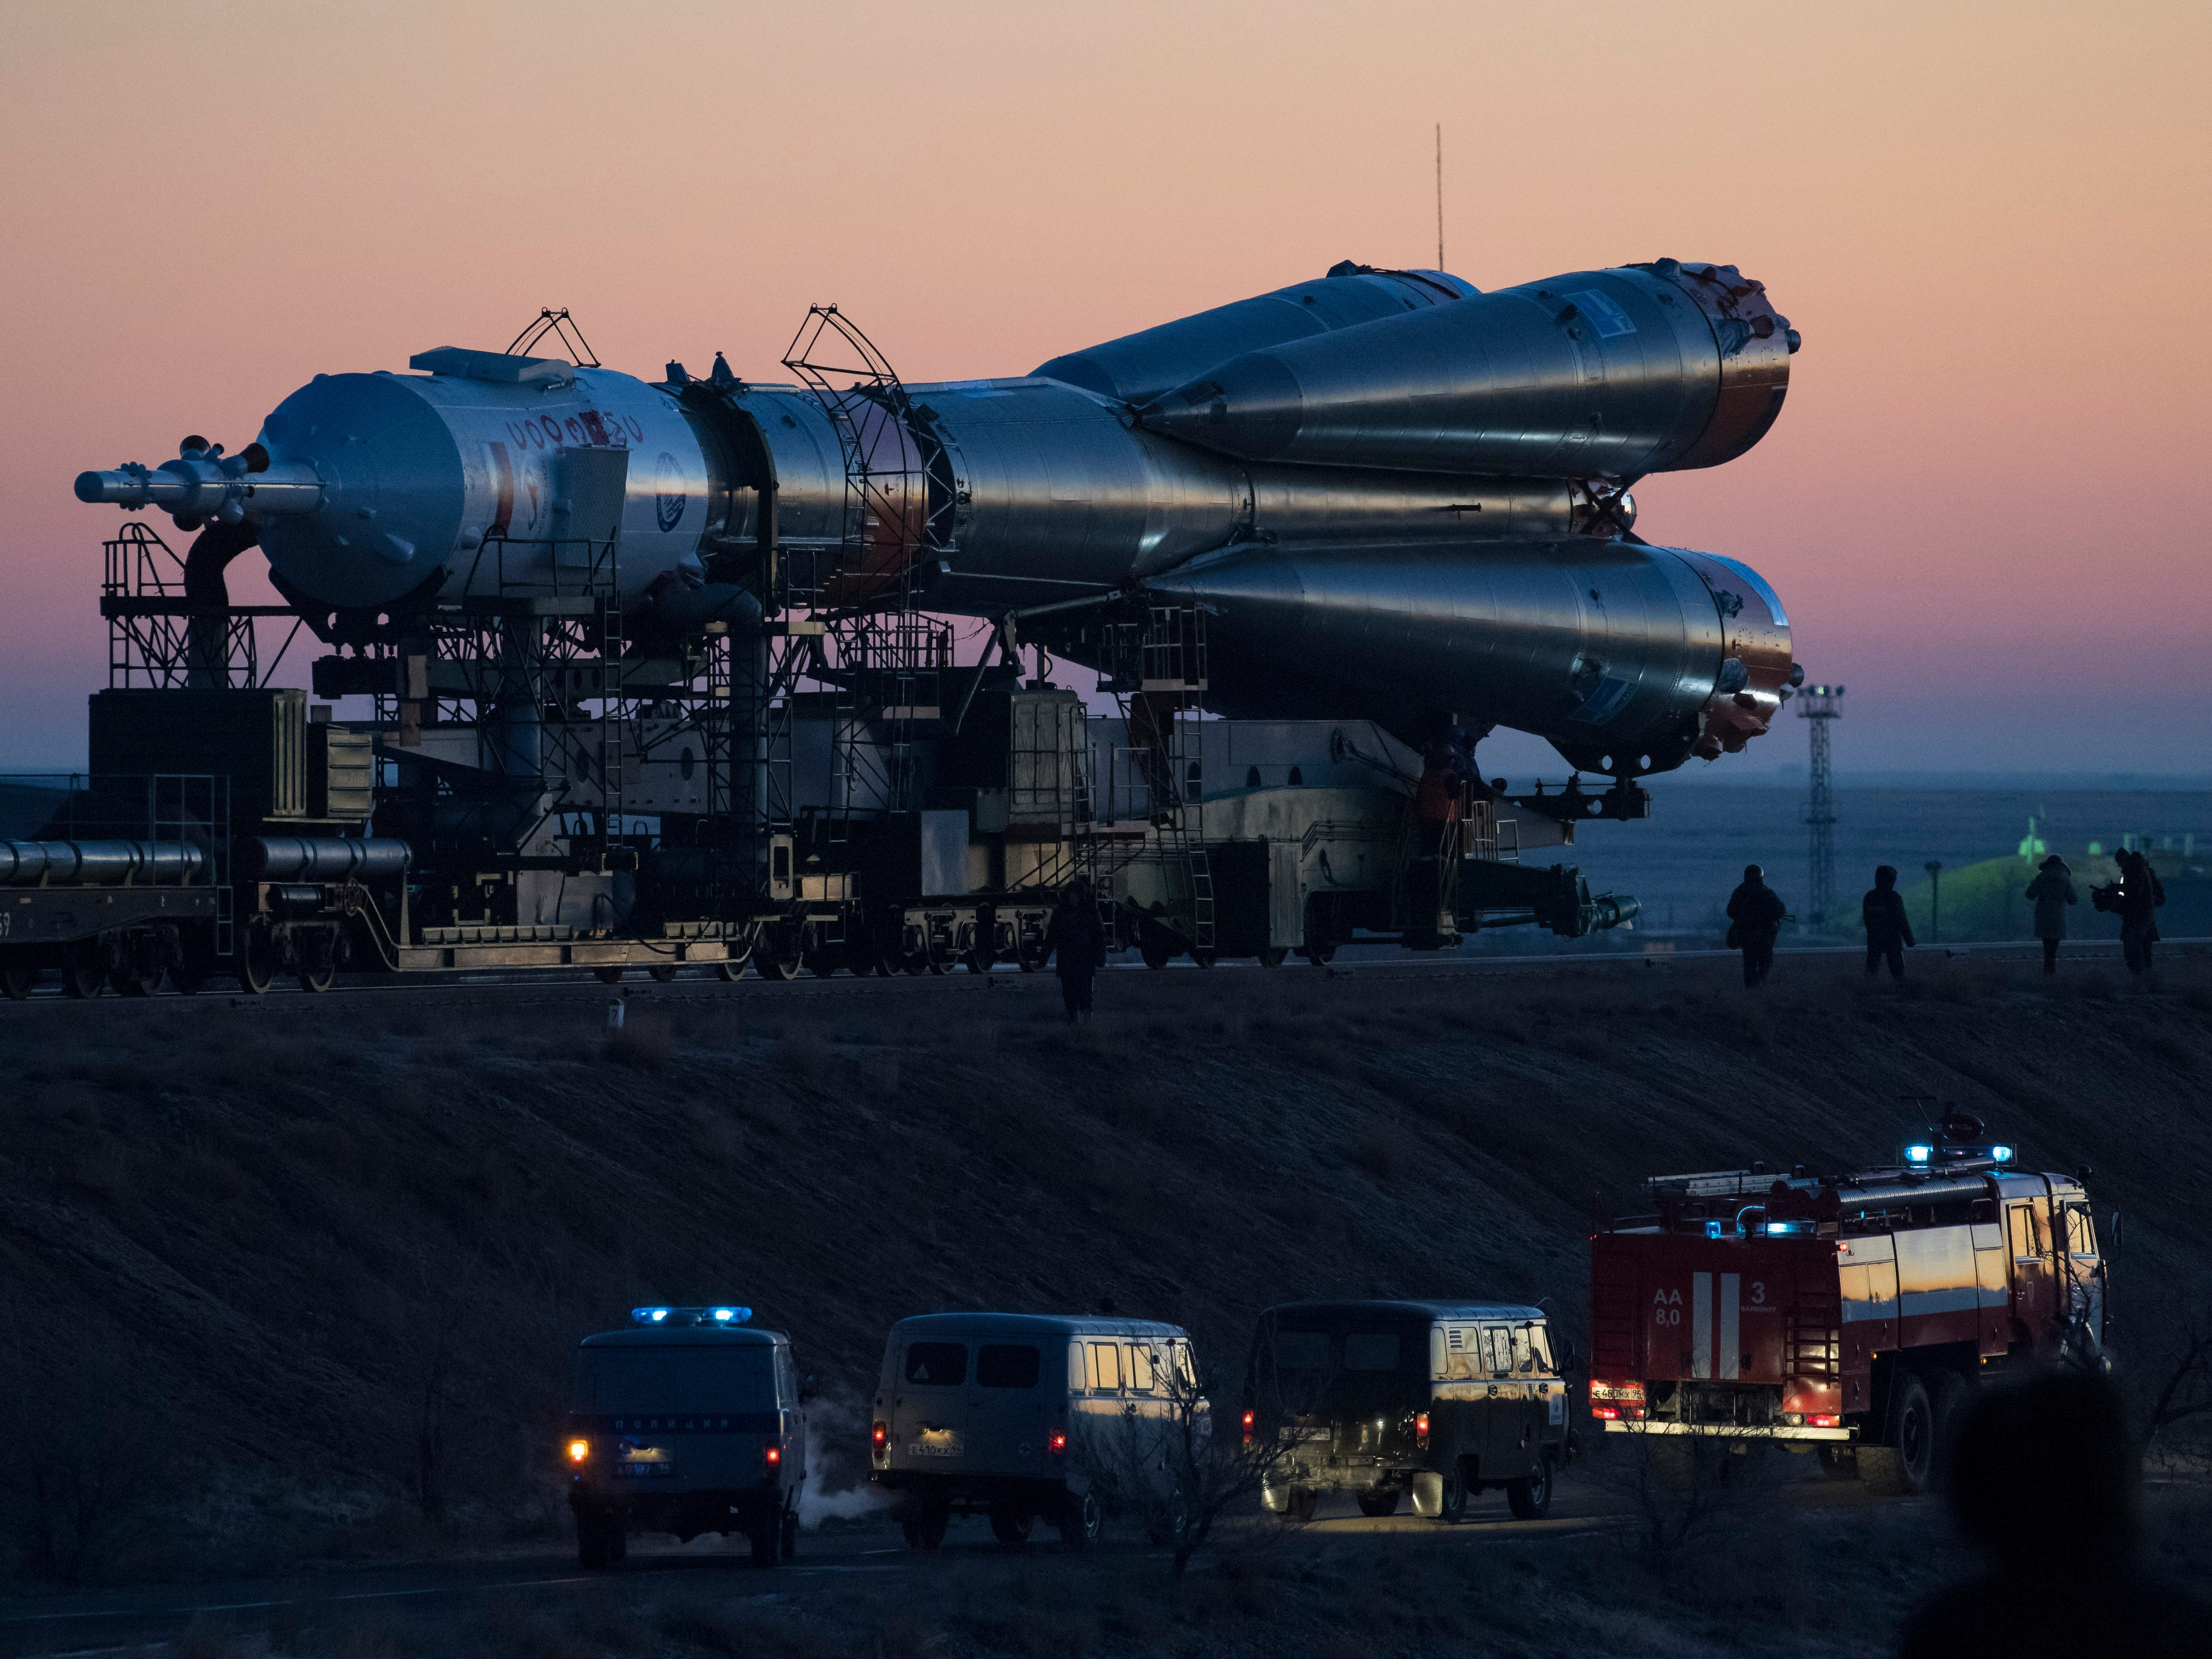 BAIKONUR, KAZAKHSTAN - DECEMBER 01: In this handout provided by NASA, T The Soyuz booster rocket and MS-11 spacecraft are rolled out to the launch pad by train at the Baikonur Cosmodrome on December 1, 2018 in Baikonur, Kazakhstan. Launch of the Soyuz rocket is scheduled for December 3 and will carry Expedition 58 Soyuz Commander Oleg Kononenko of Roscosmos, Flight Engineer Anne McClain of NASA, and Flight Engineer David Saint-Jacques of the Canadian Space Agency (CSA) into orbit to begin their six and a half month mission on the International Space Station.